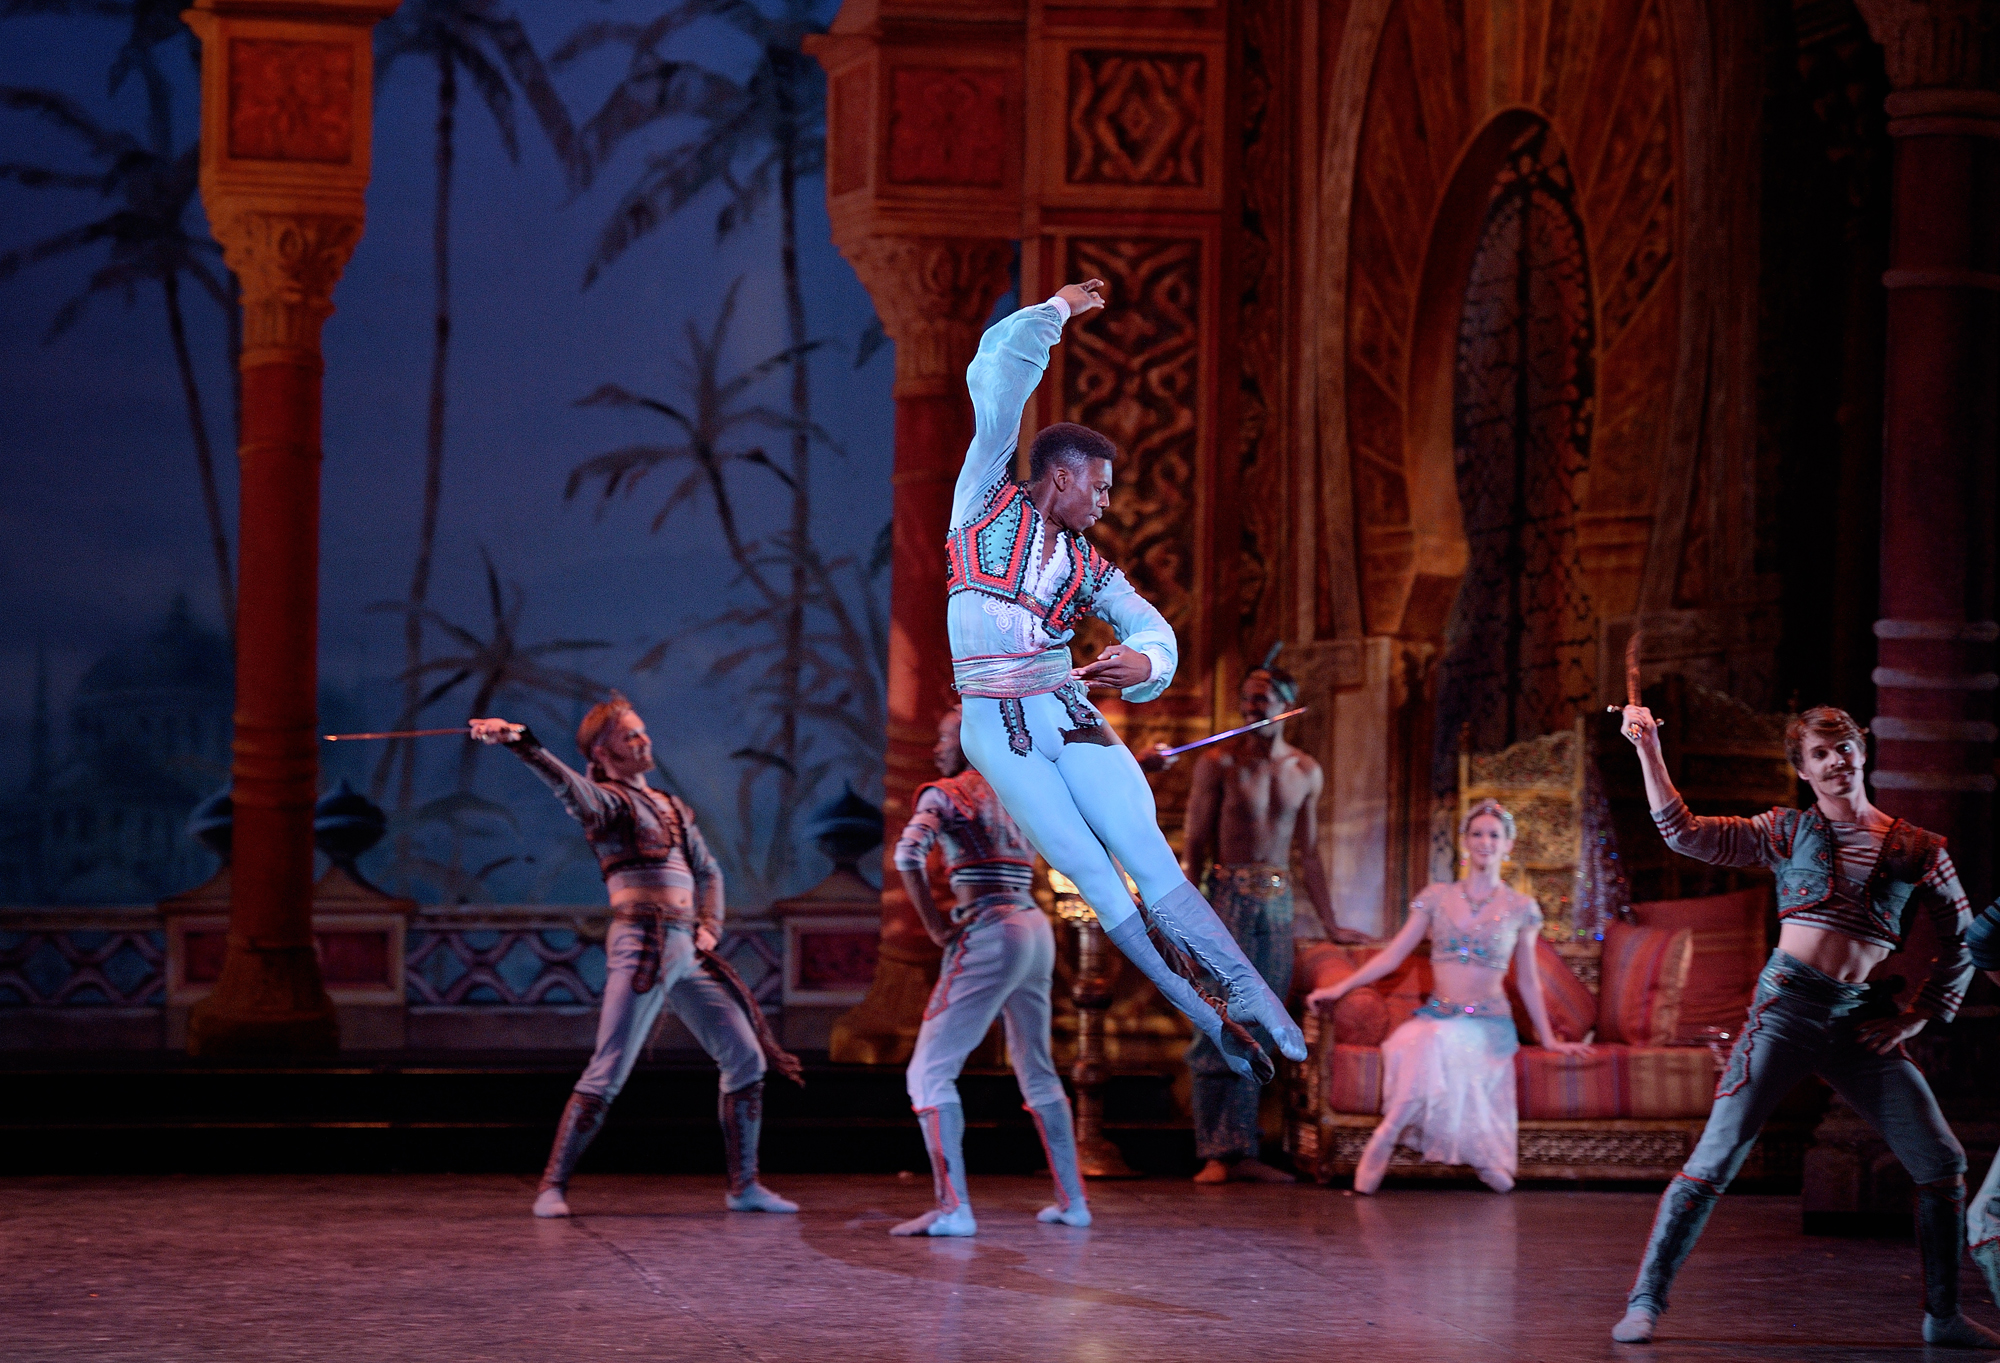 English National Ballet. Brooklyn Mack as Conrad in Le Corsaire.